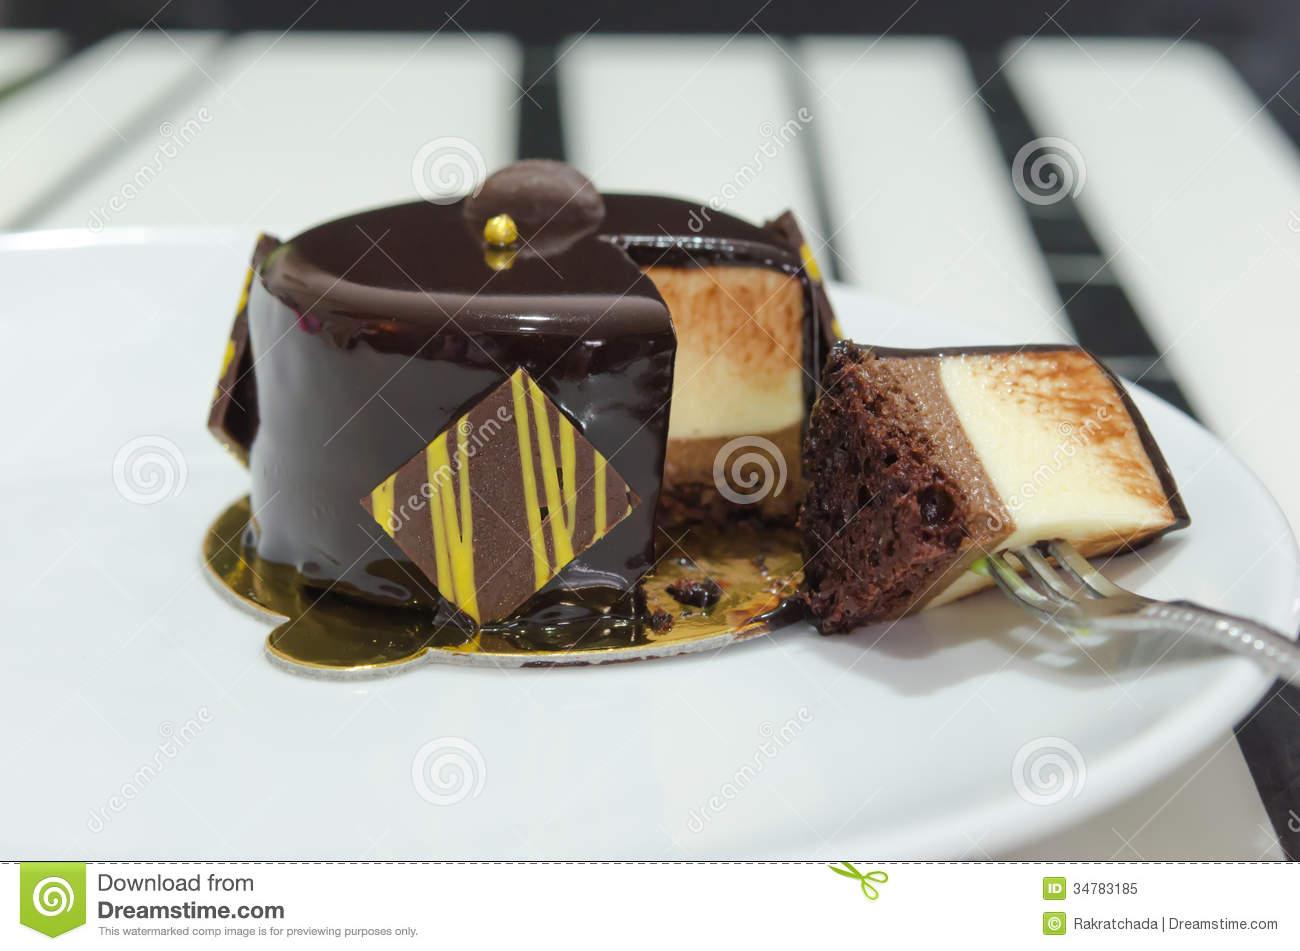 Mousse Cake With Fork Royalty Free Stock Photo - Image: 34783185